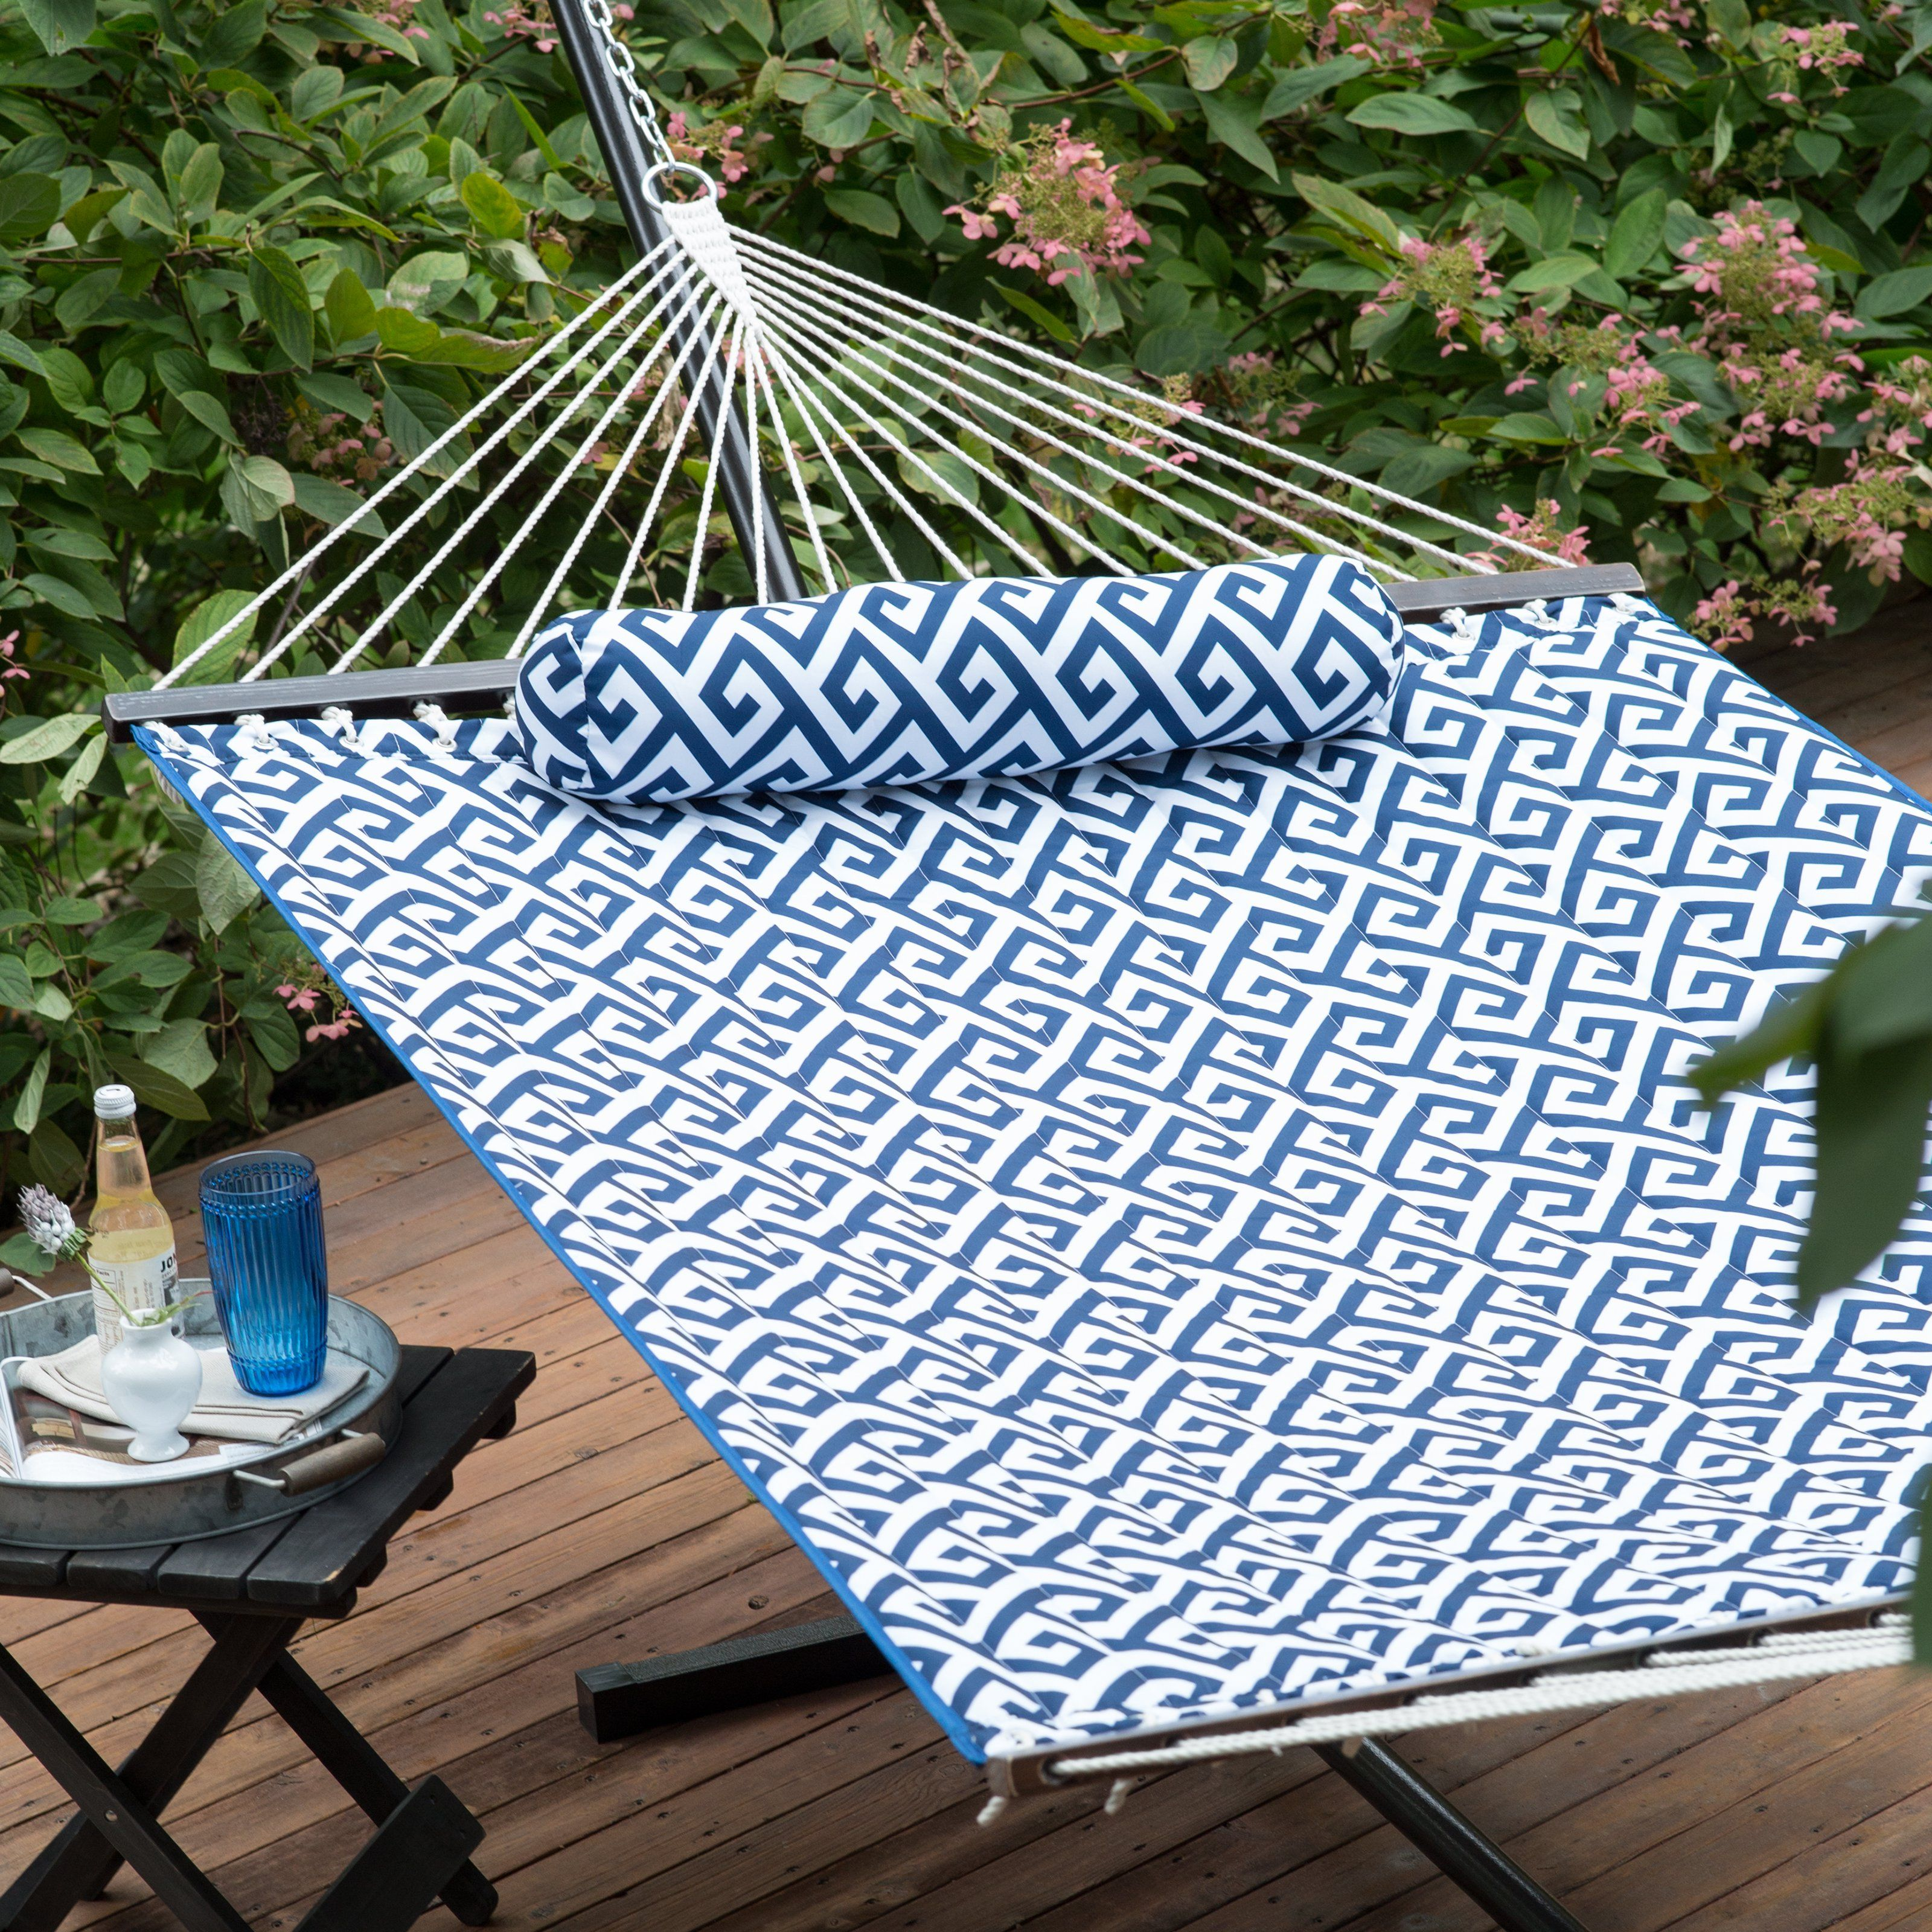 Island Bay 11 Ft Greek Key Quilted Hammock With Metal Stand Deluxe Set From Hayneedle Com Outdoor Hammock Outdoor Plates Hammock Stand